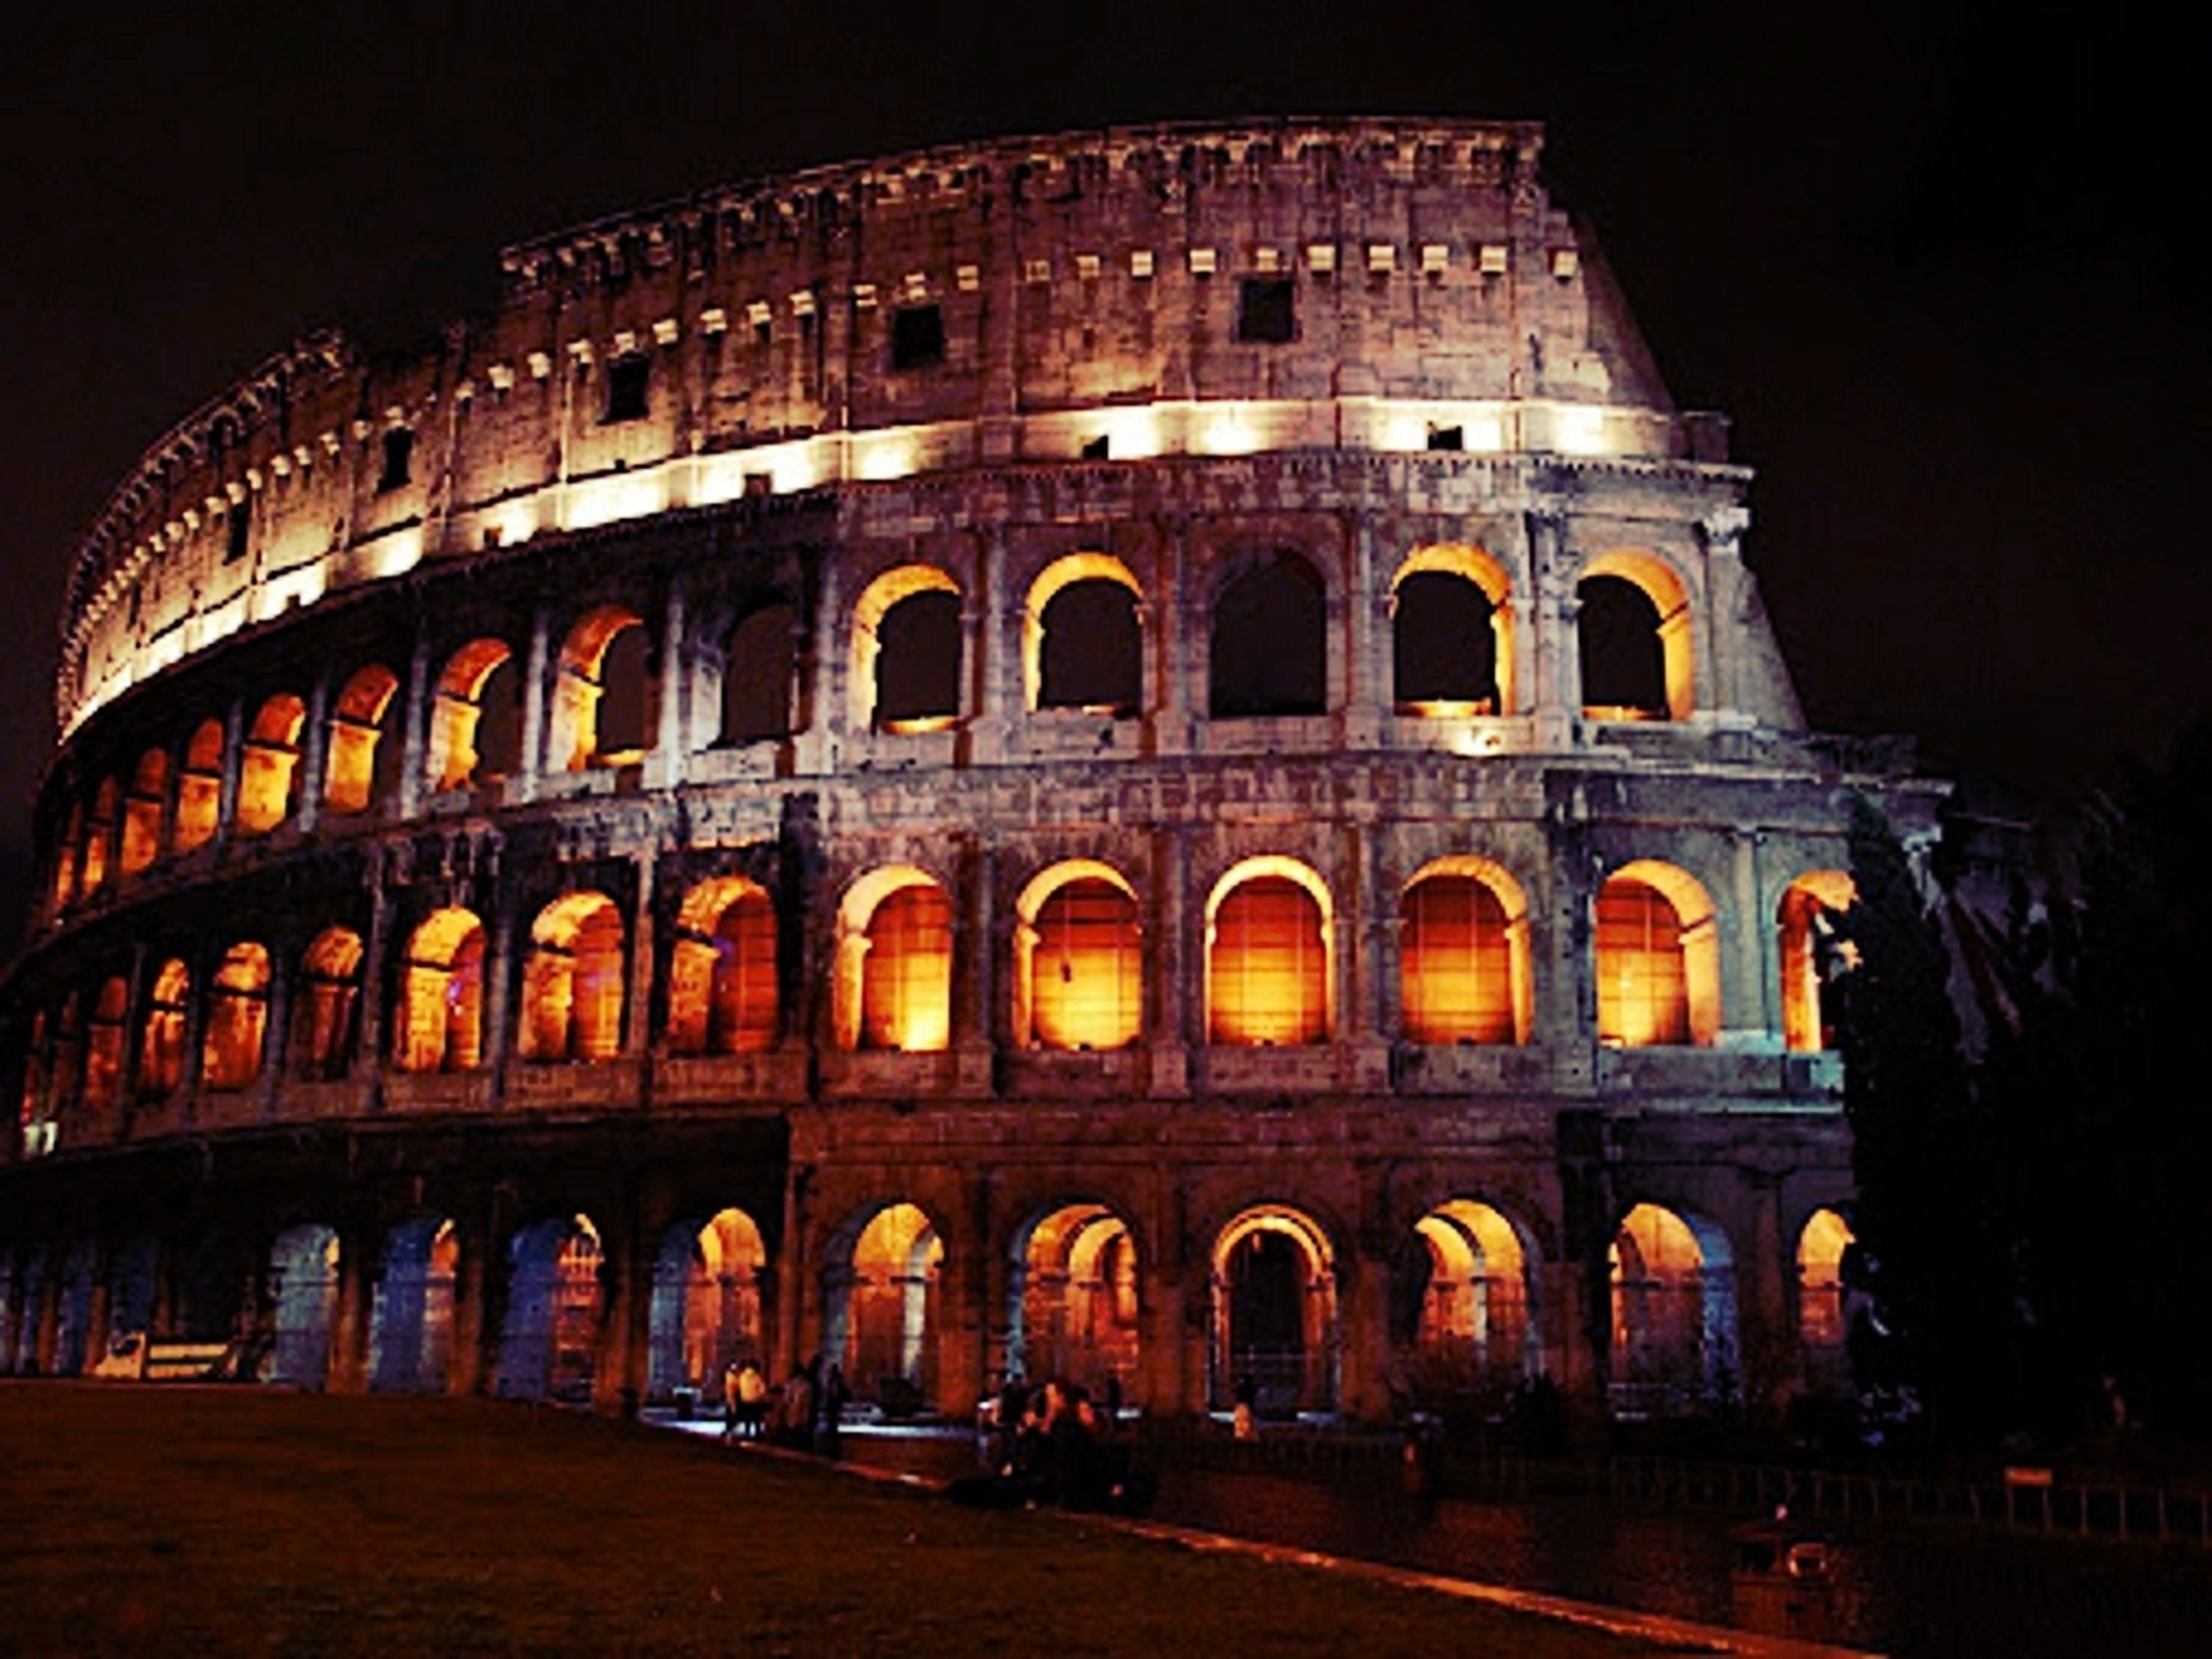 architecture, built structure, arch, building exterior, history, famous place, travel destinations, tourism, night, international landmark, travel, culture, facade, low angle view, illuminated, tourist, capital cities, coliseum, architectural column, large group of people